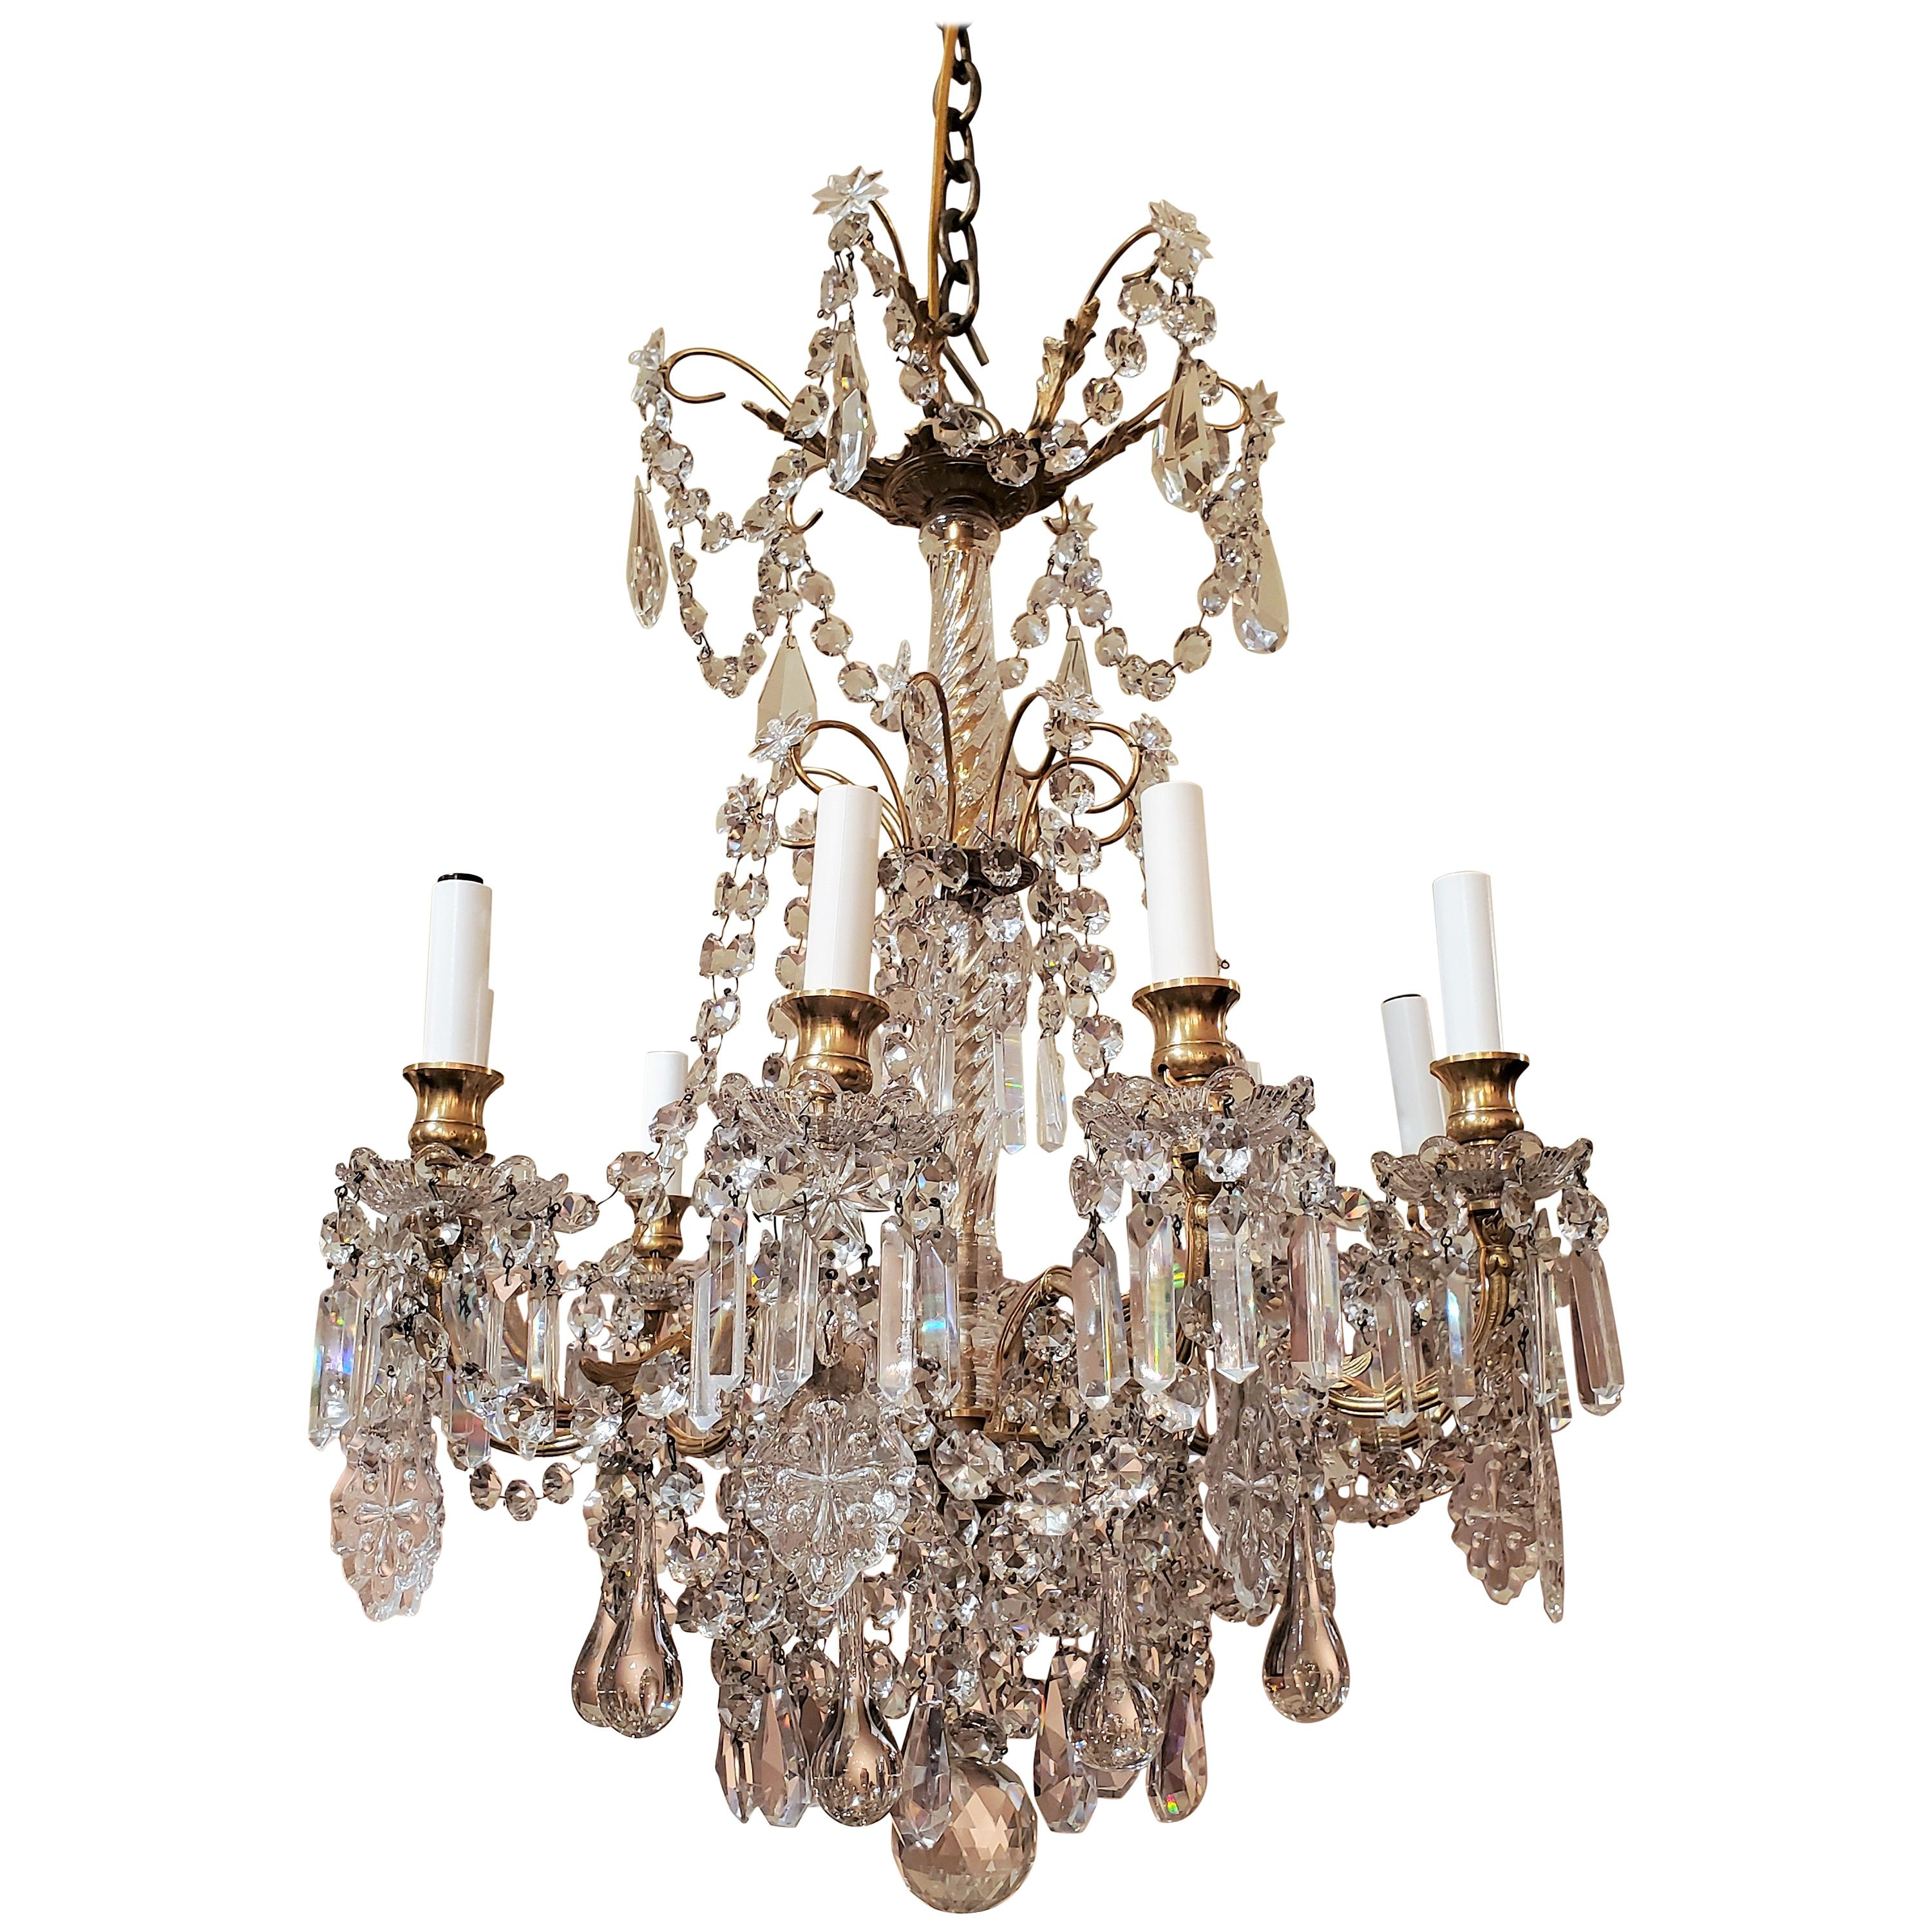 Antique French Fine Crystal and Bronze 9-Light Chandelier, circa 1880